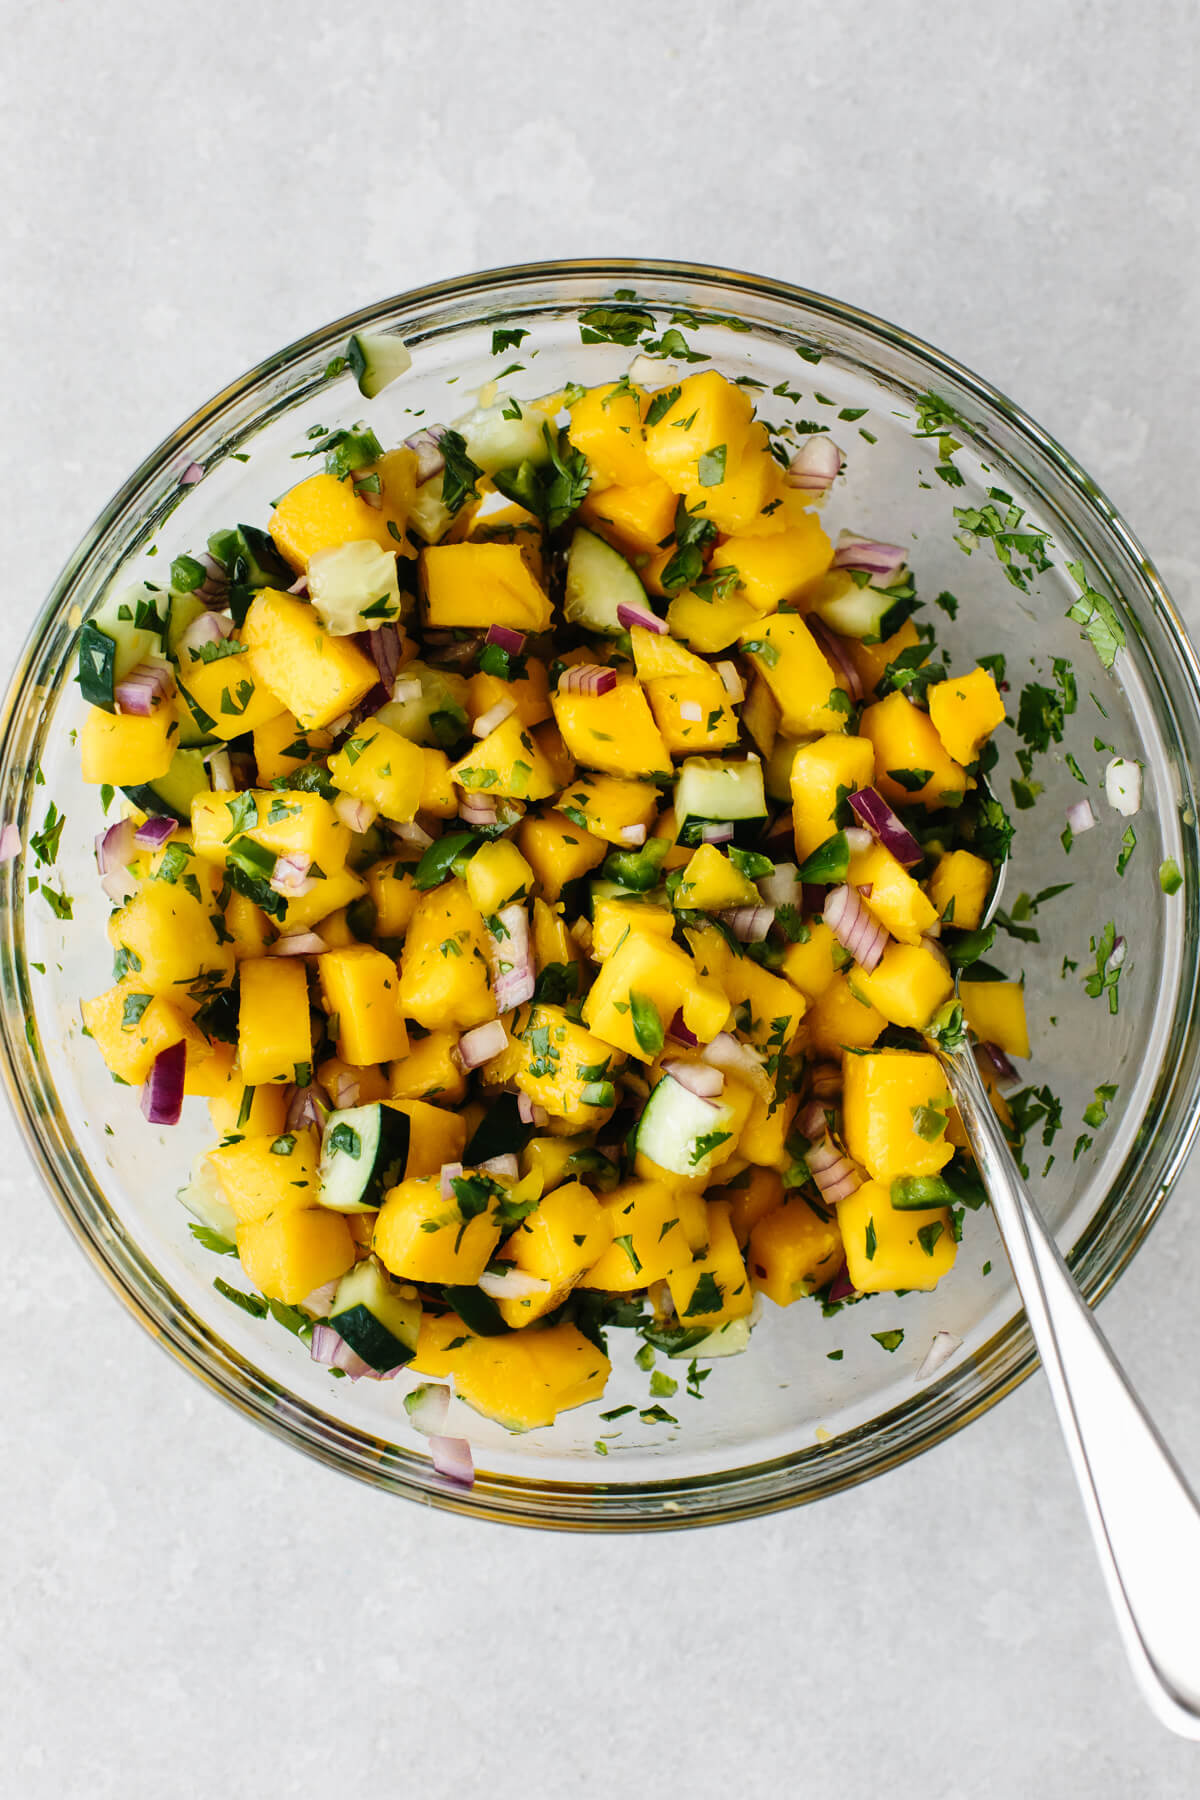 Mixing mango salsa in a bowl.